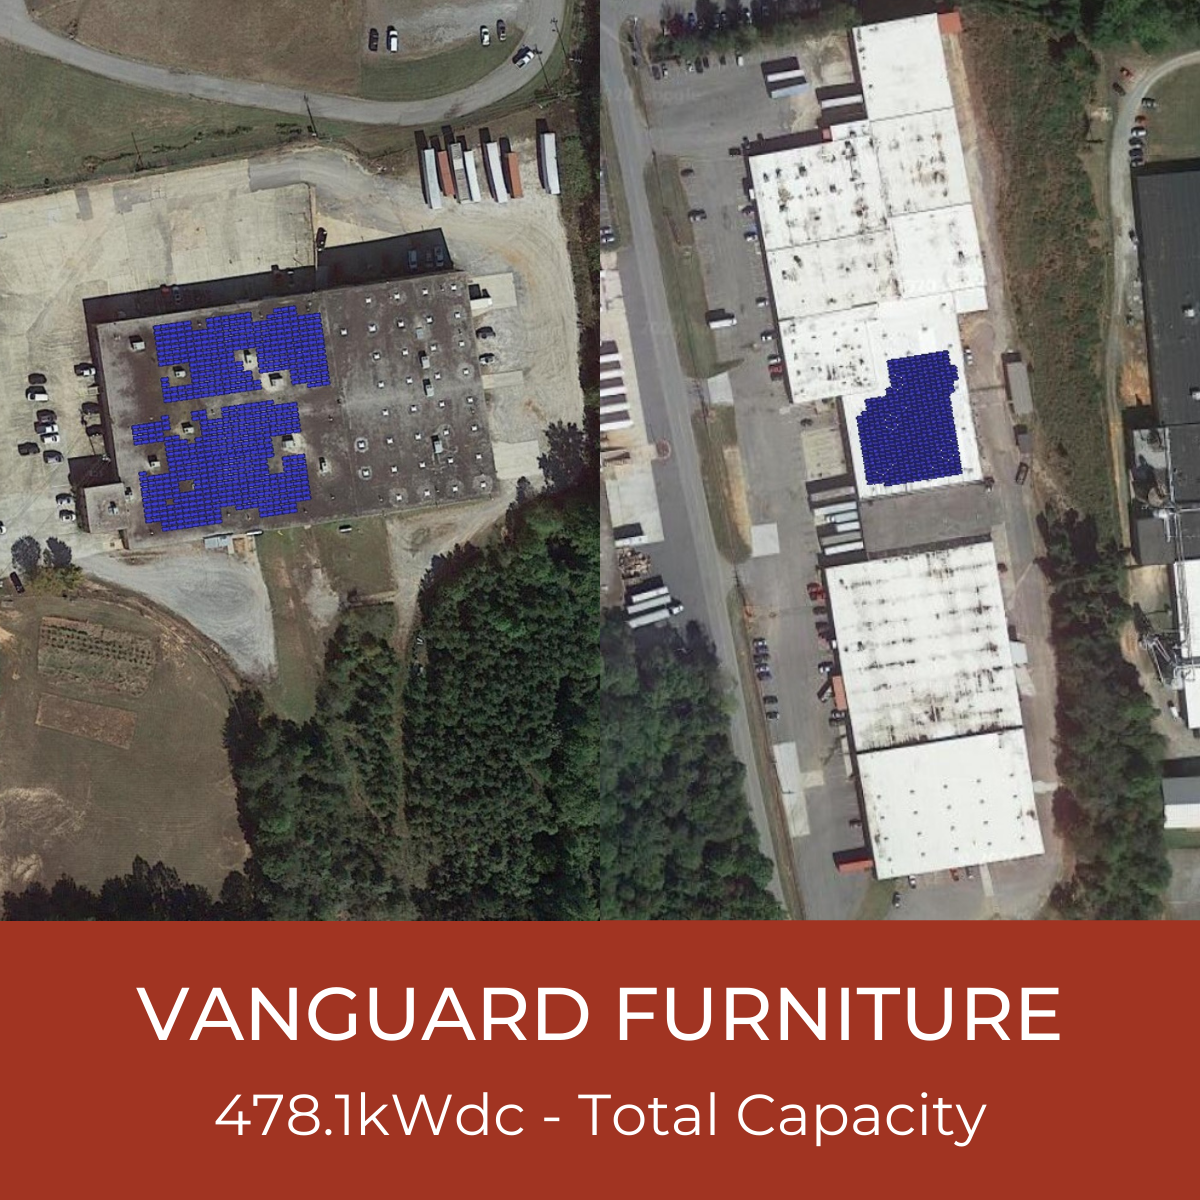 Vanguard Furniture Menu Tile - Collage of Solar Project Helioscopes, Total System Capacity - 478.1kWdc